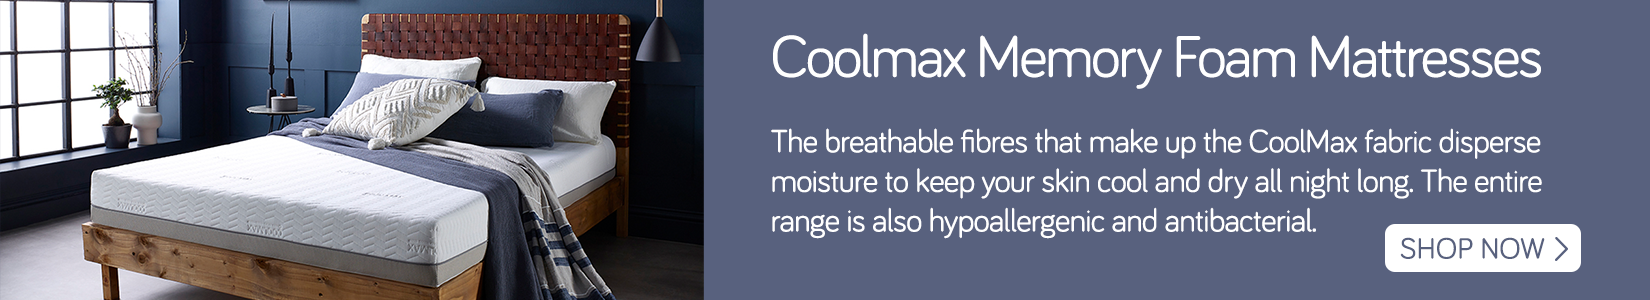 Coolmax mattress banner with text